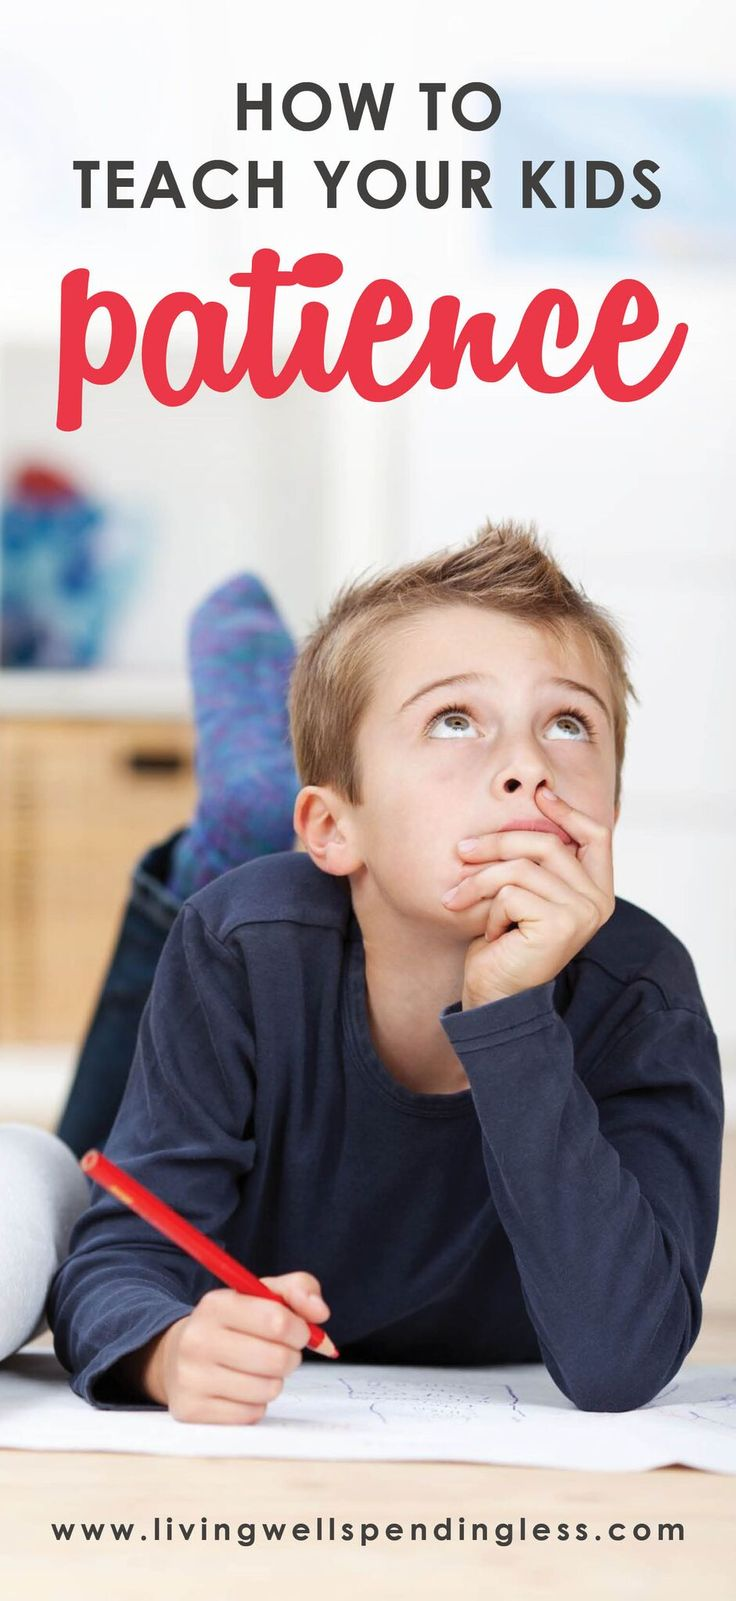 Teach Your Kids Patience | Virtuous Children | Virtues in the Home | Patience | Instant Gratification via @lwsl